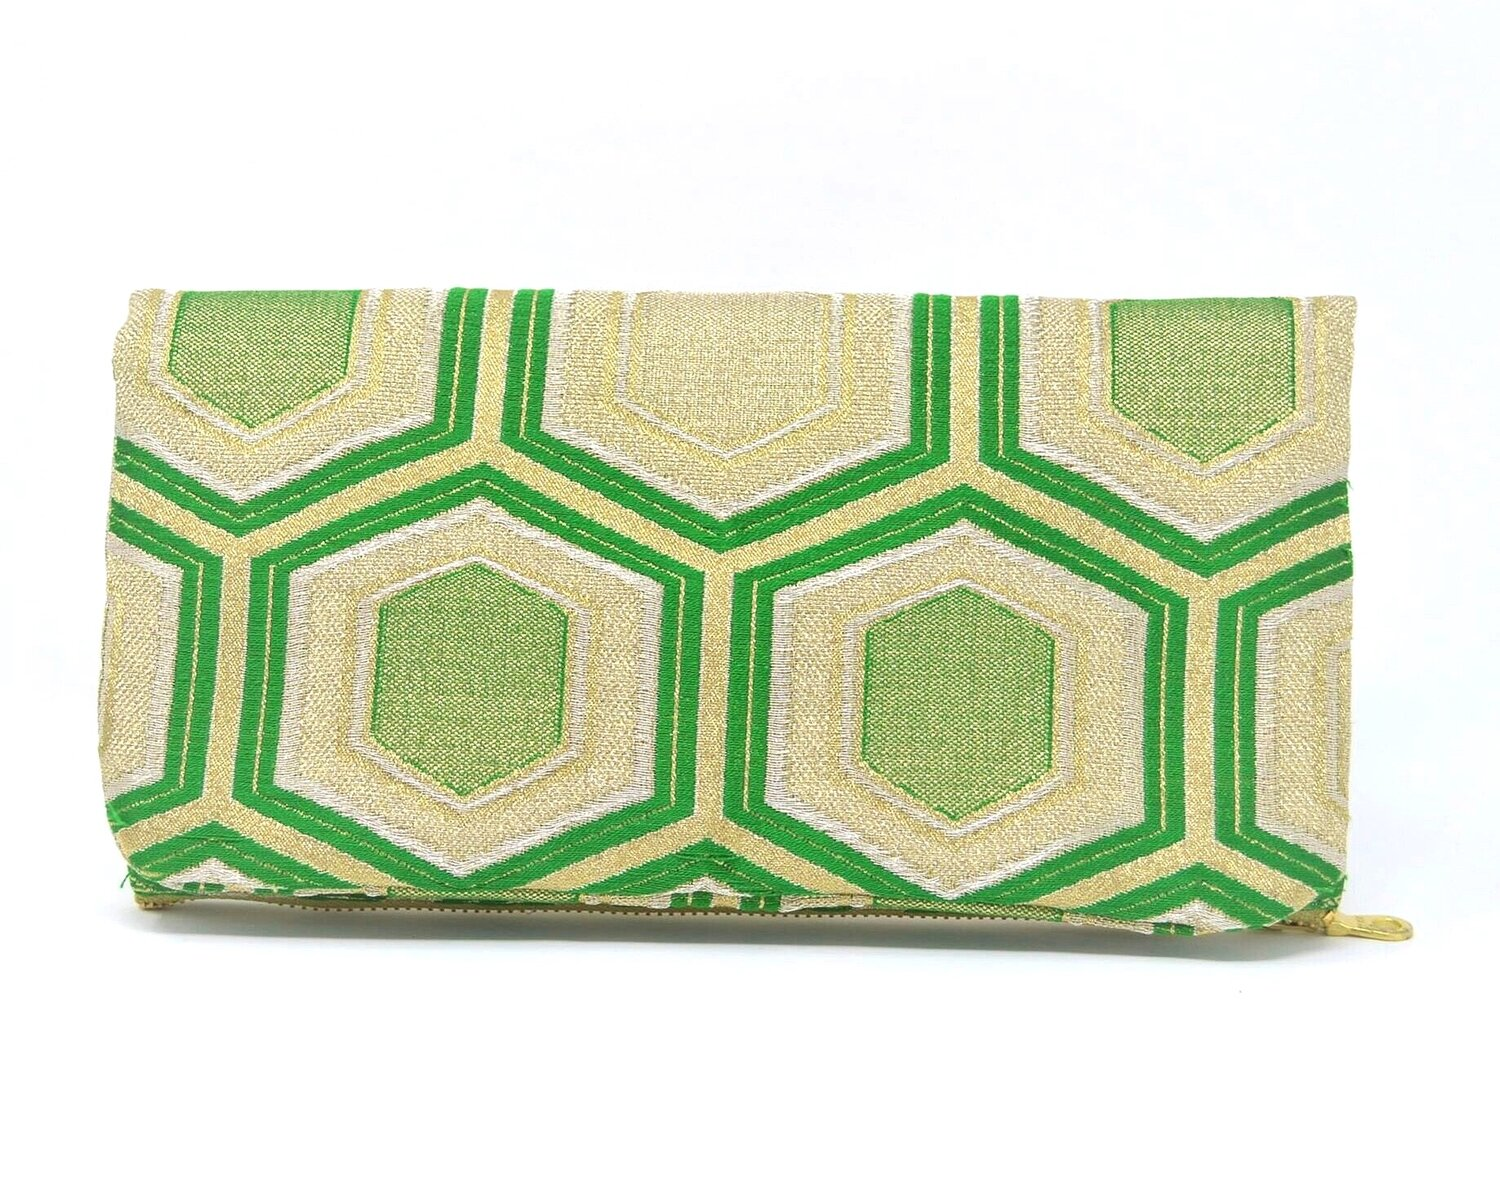 Evergreen - Handmade Foldover Clutch Purse